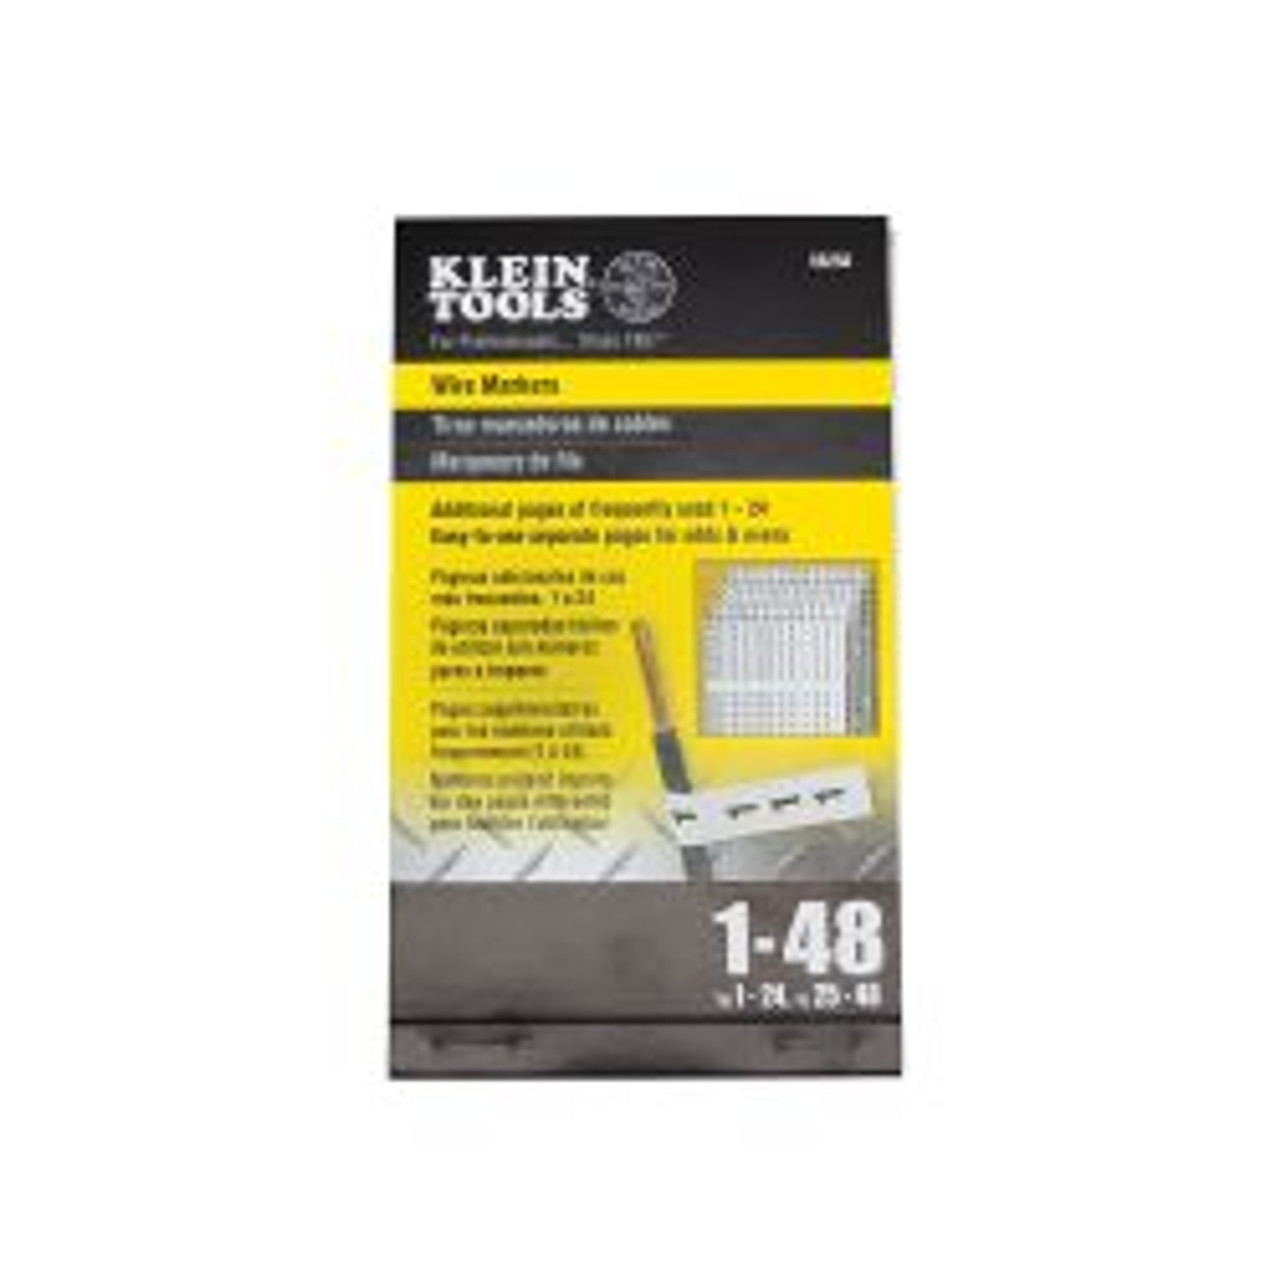 Klein 56250 Wire Markers - Numbers 1-48